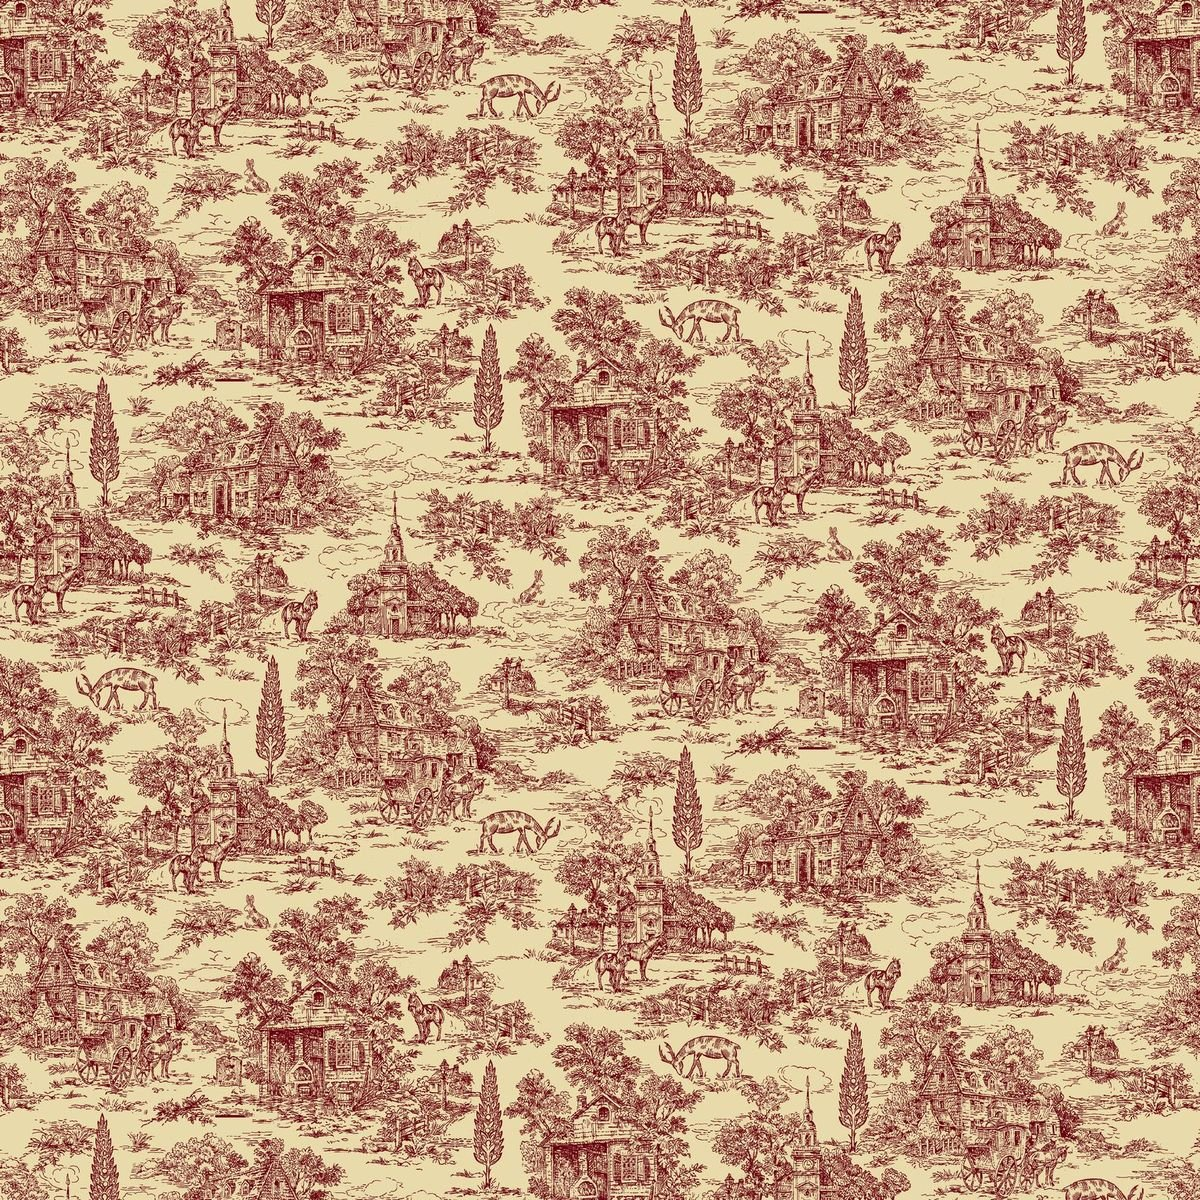 HG-Farmhouse Christmas 108 Quilt Back 9685-44 Cream - Red Toile on Cream Background